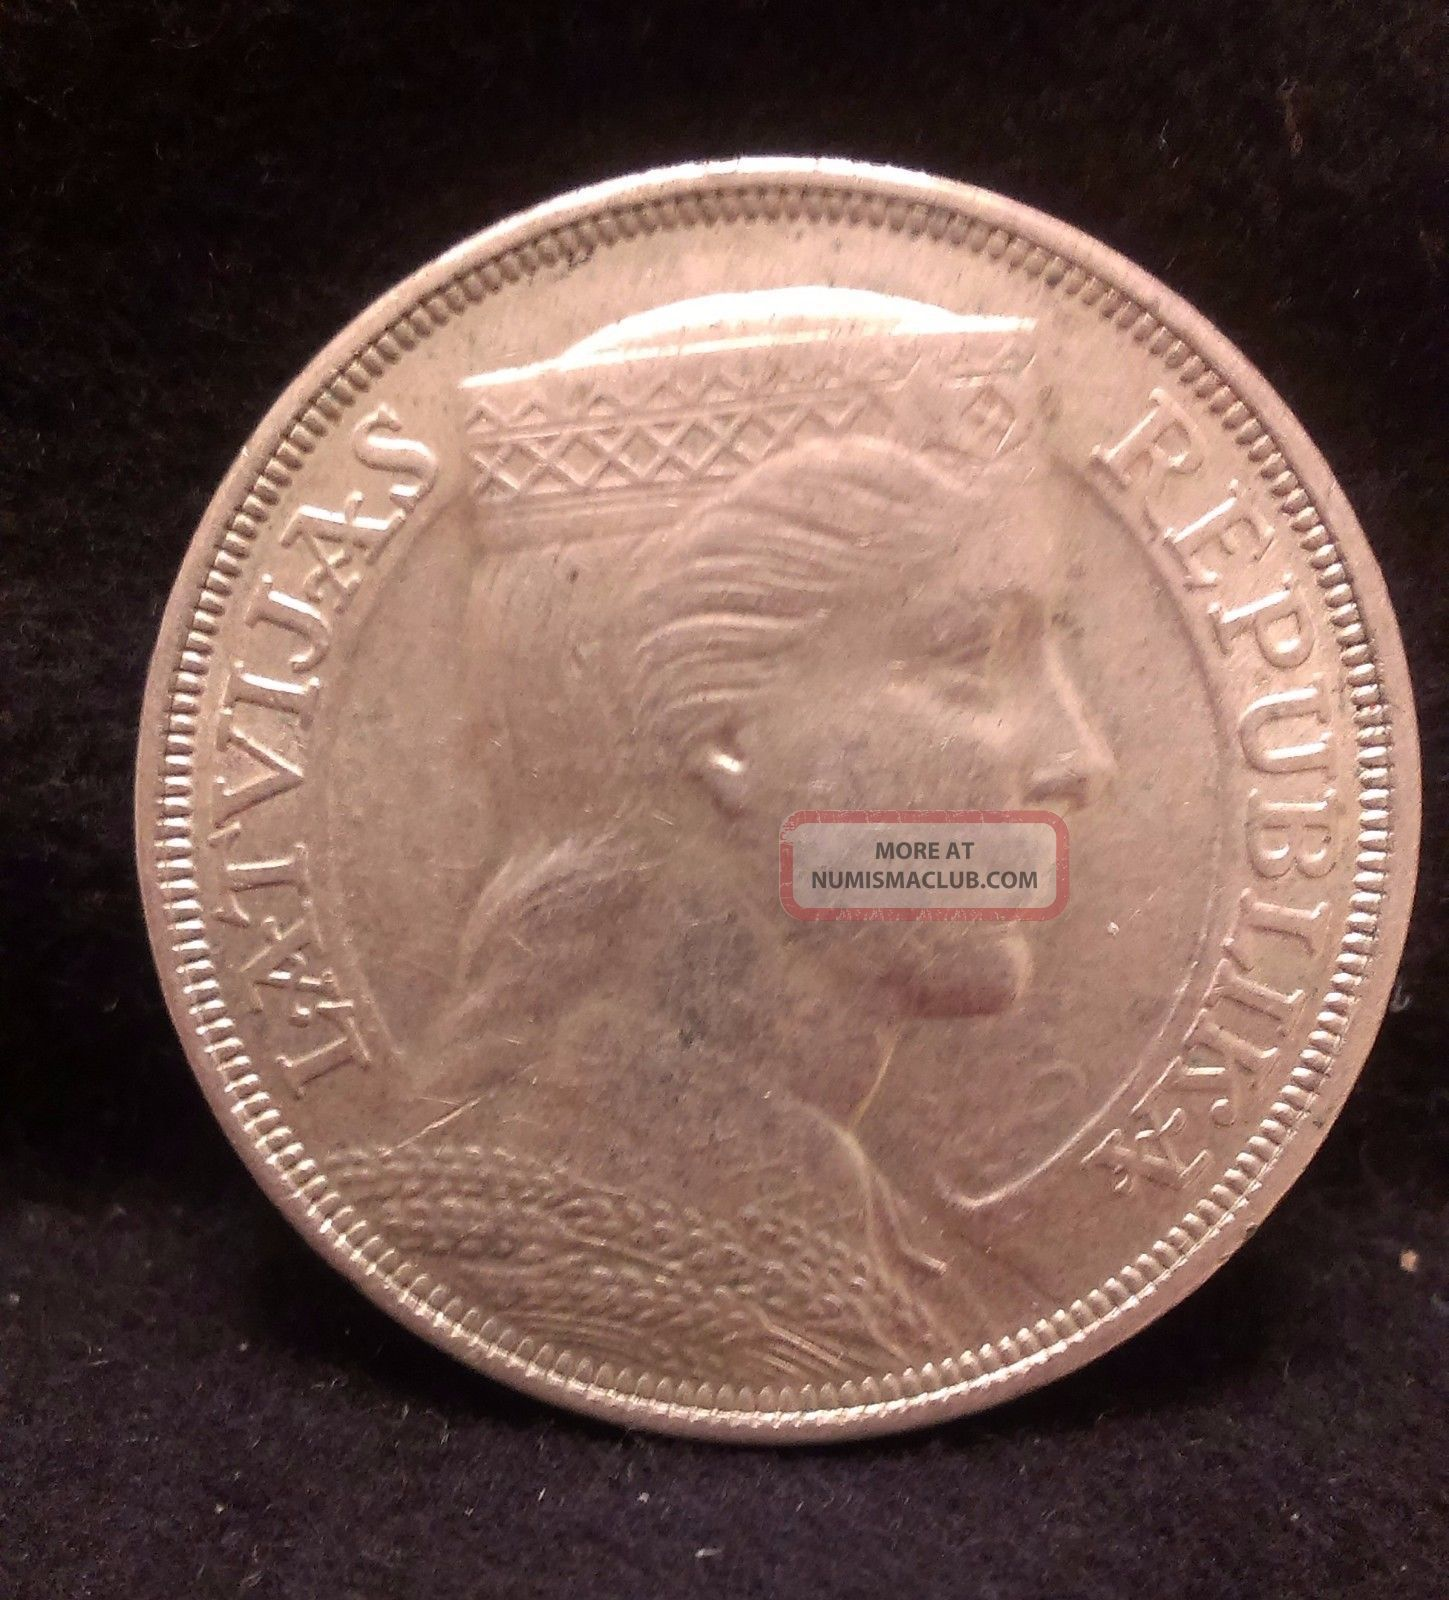 1931 Latvia Silver 5 Lats,  Large Crown Sized Coin,  Decent Grade,  Km - 9 Europe photo